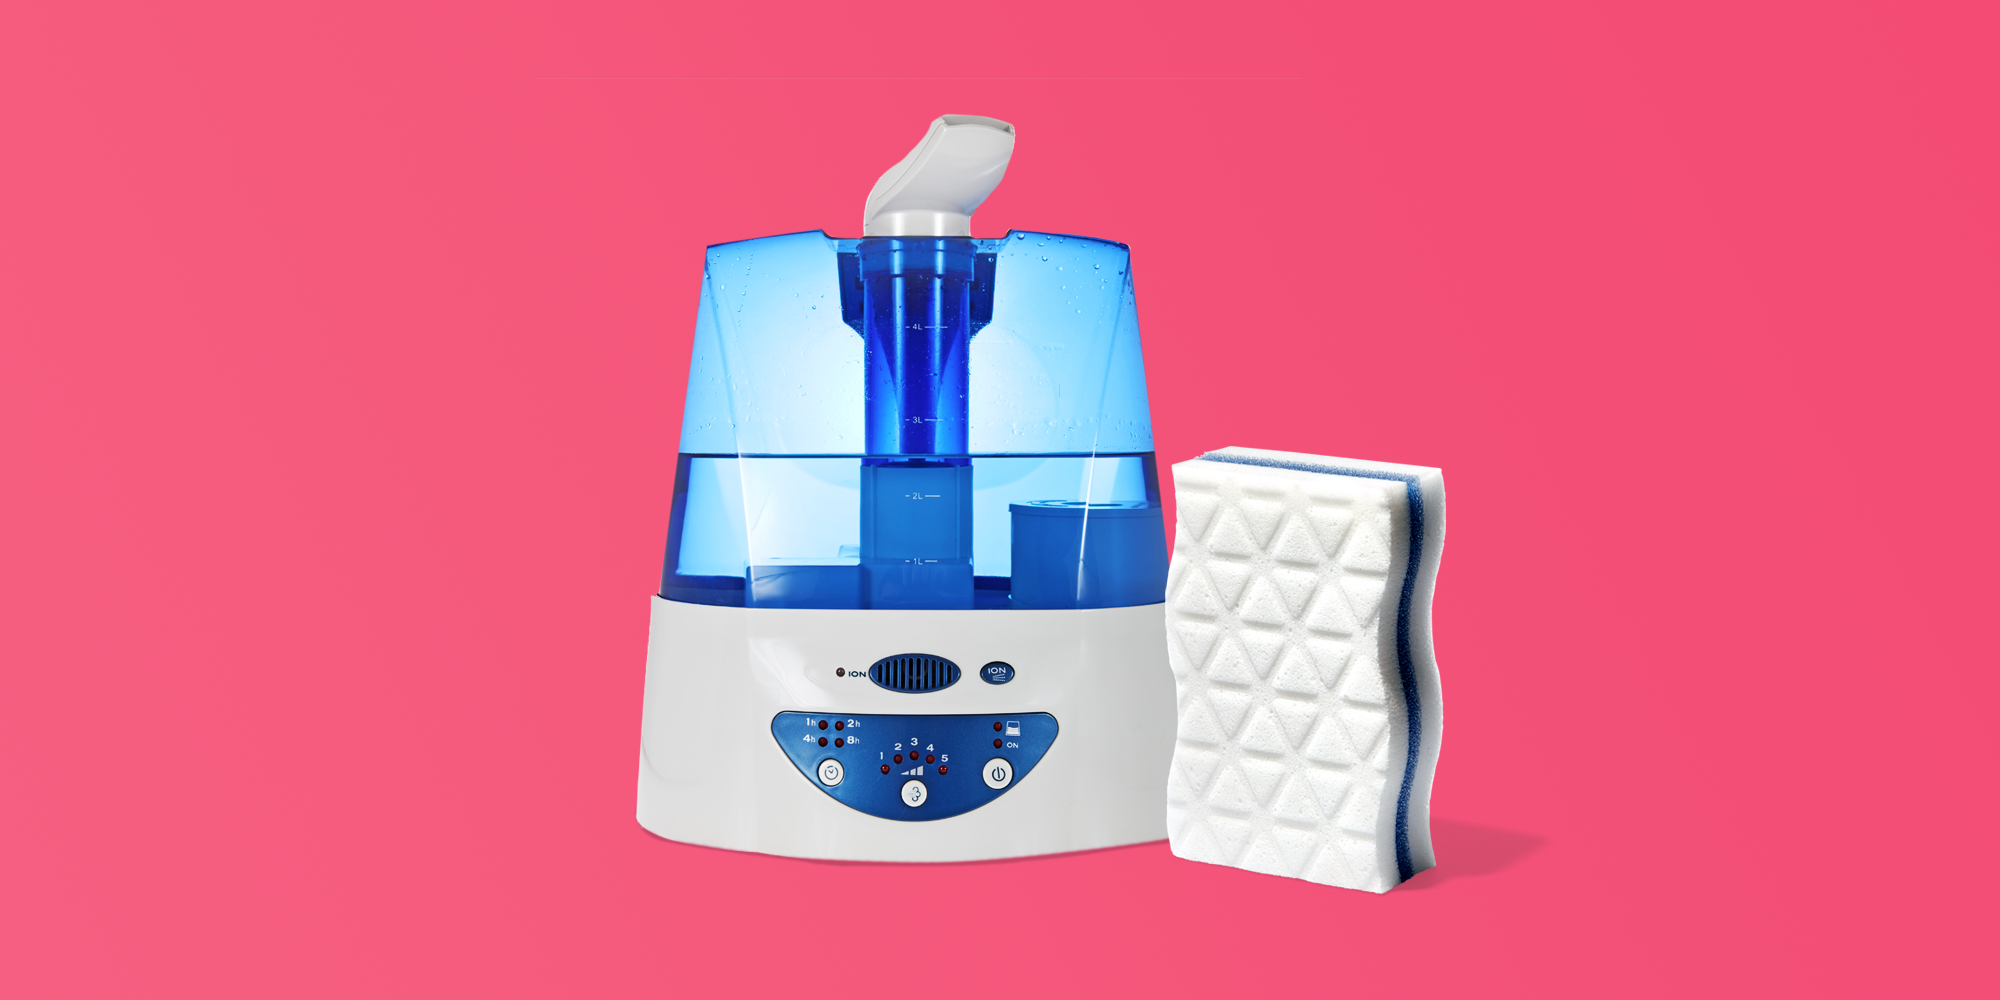 How To Clean A Humidifier Humidifier Maintenance Tips According To The Good Housekeeping Institute